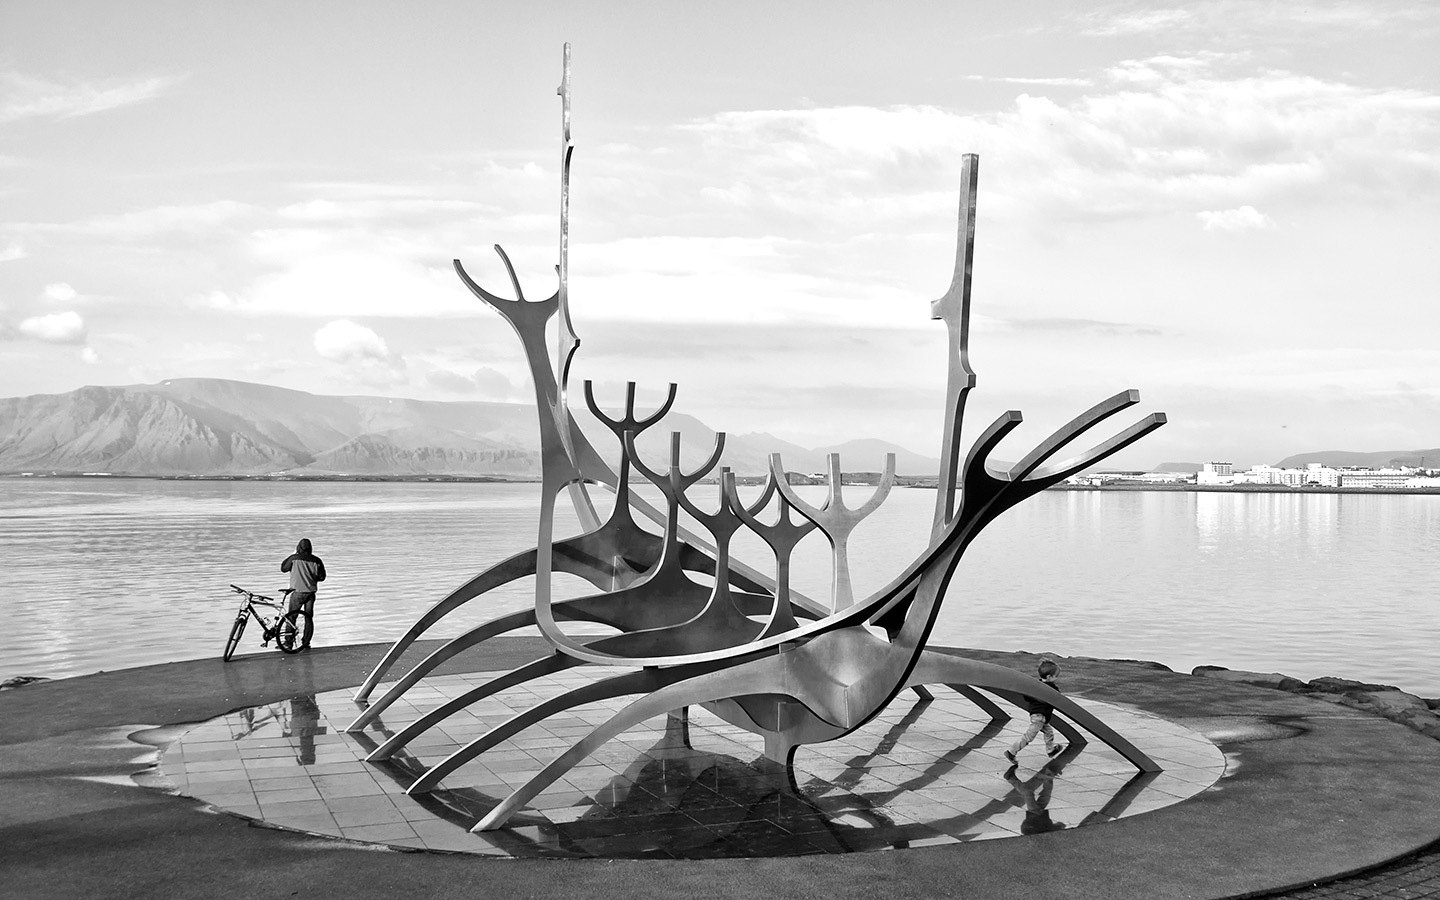 The Sun Voyager or Sólfar sculpture